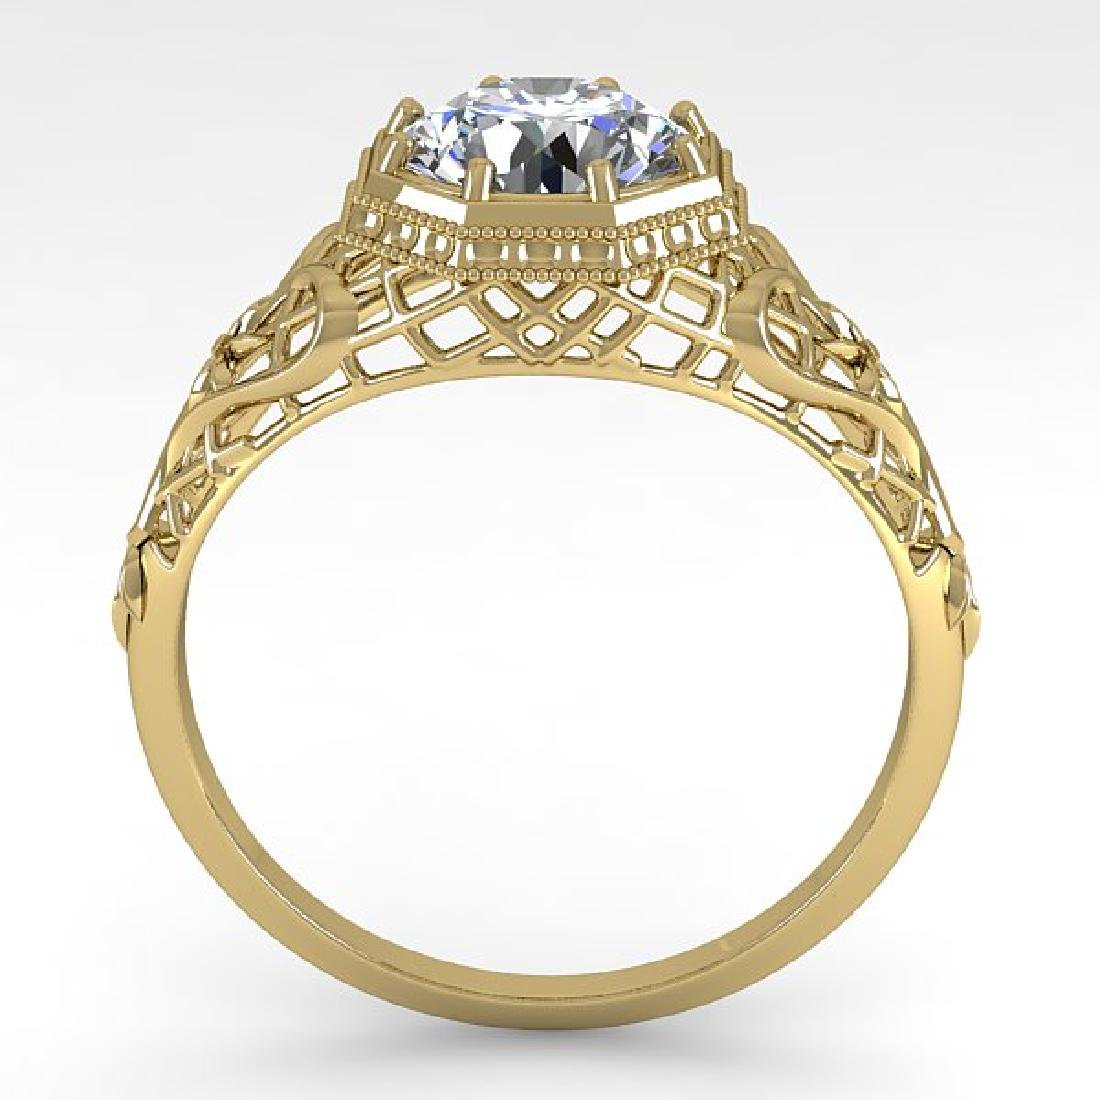 1.50 CTW VS/SI Diamond Solitaire Ring 14K Yellow Gold - 2